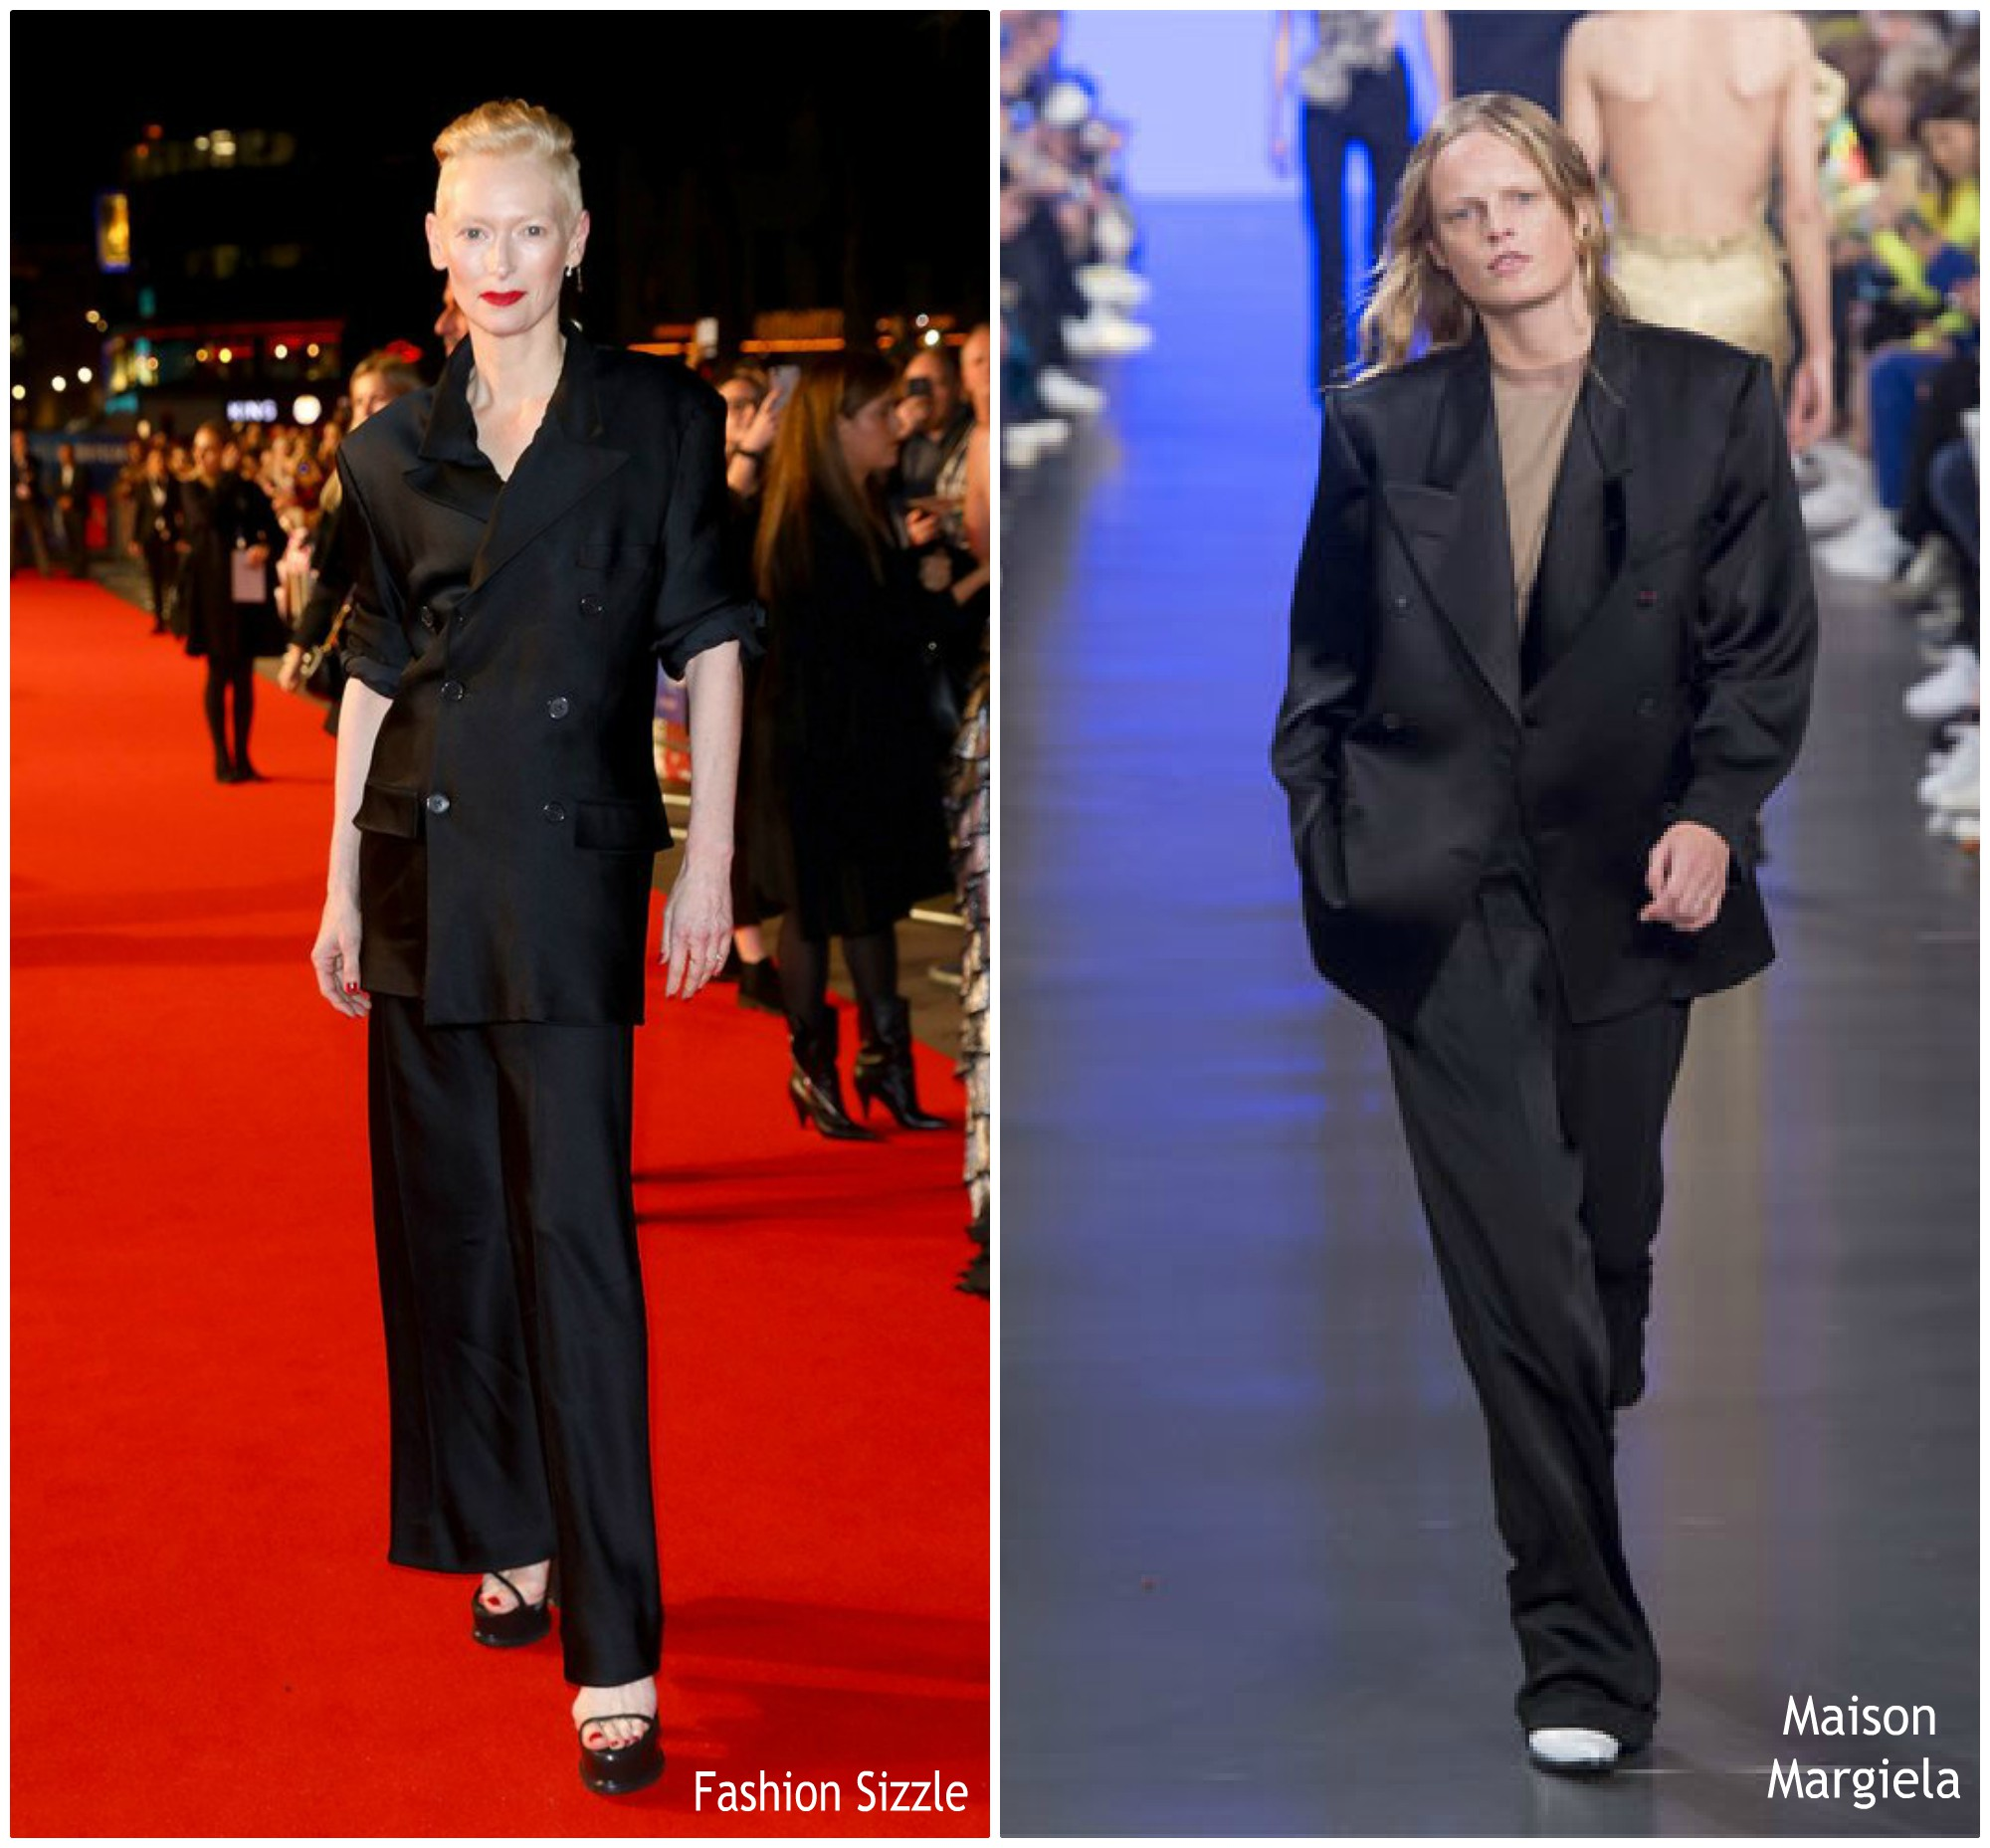 tilda-swinton-in-maison-margiela-suspiria-london-film-festival-premiere